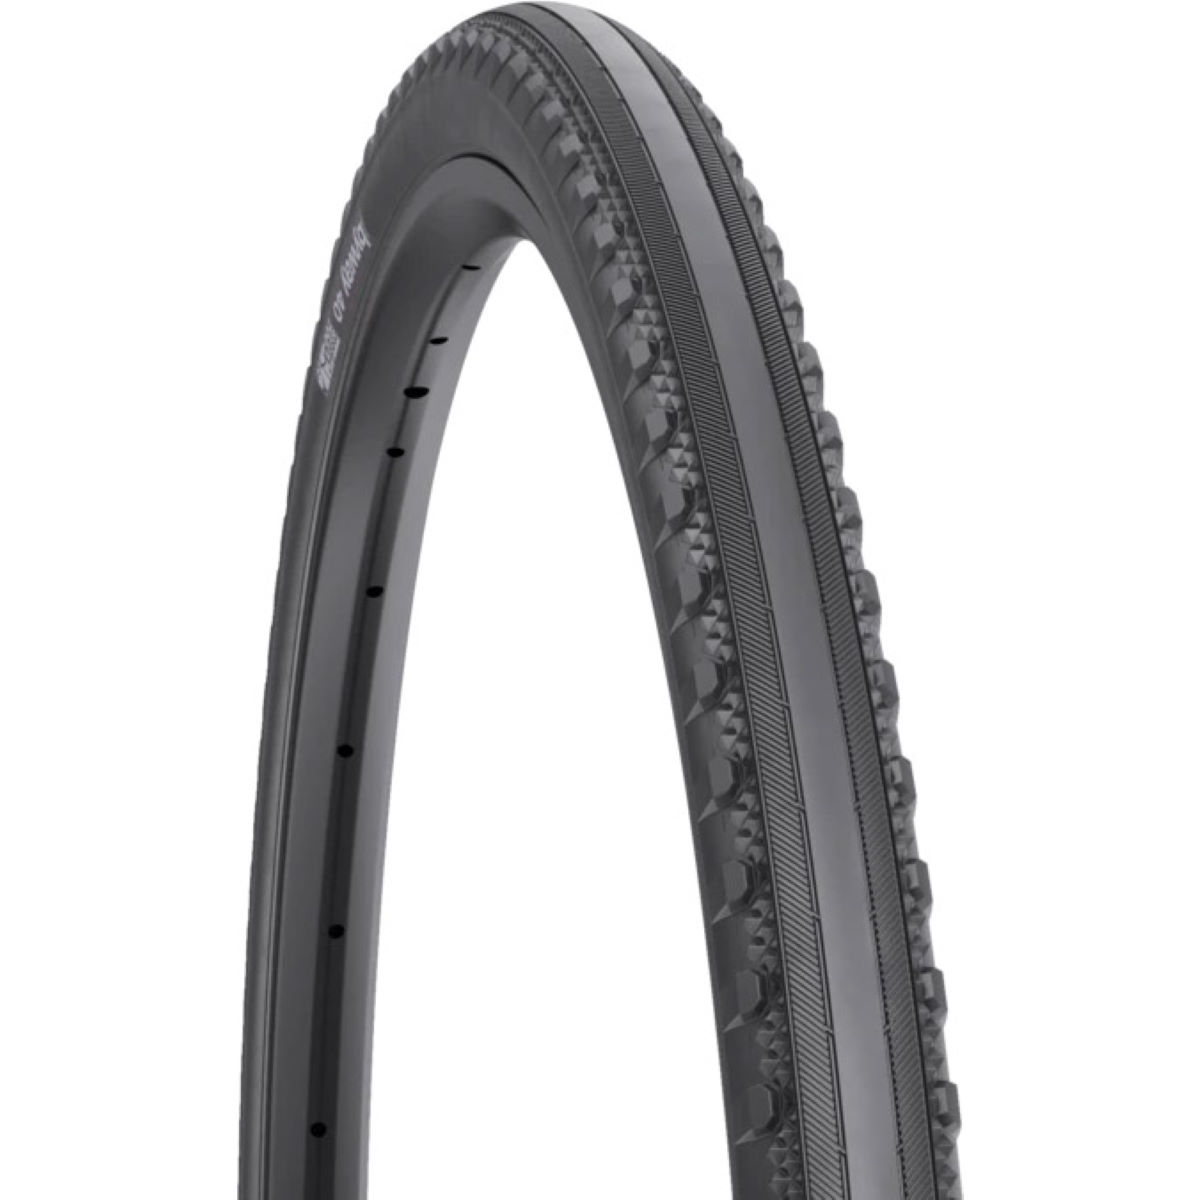 Wtb Byway Tcs Fast Tyre (sg2) - 700c 40mm Black  Tyres